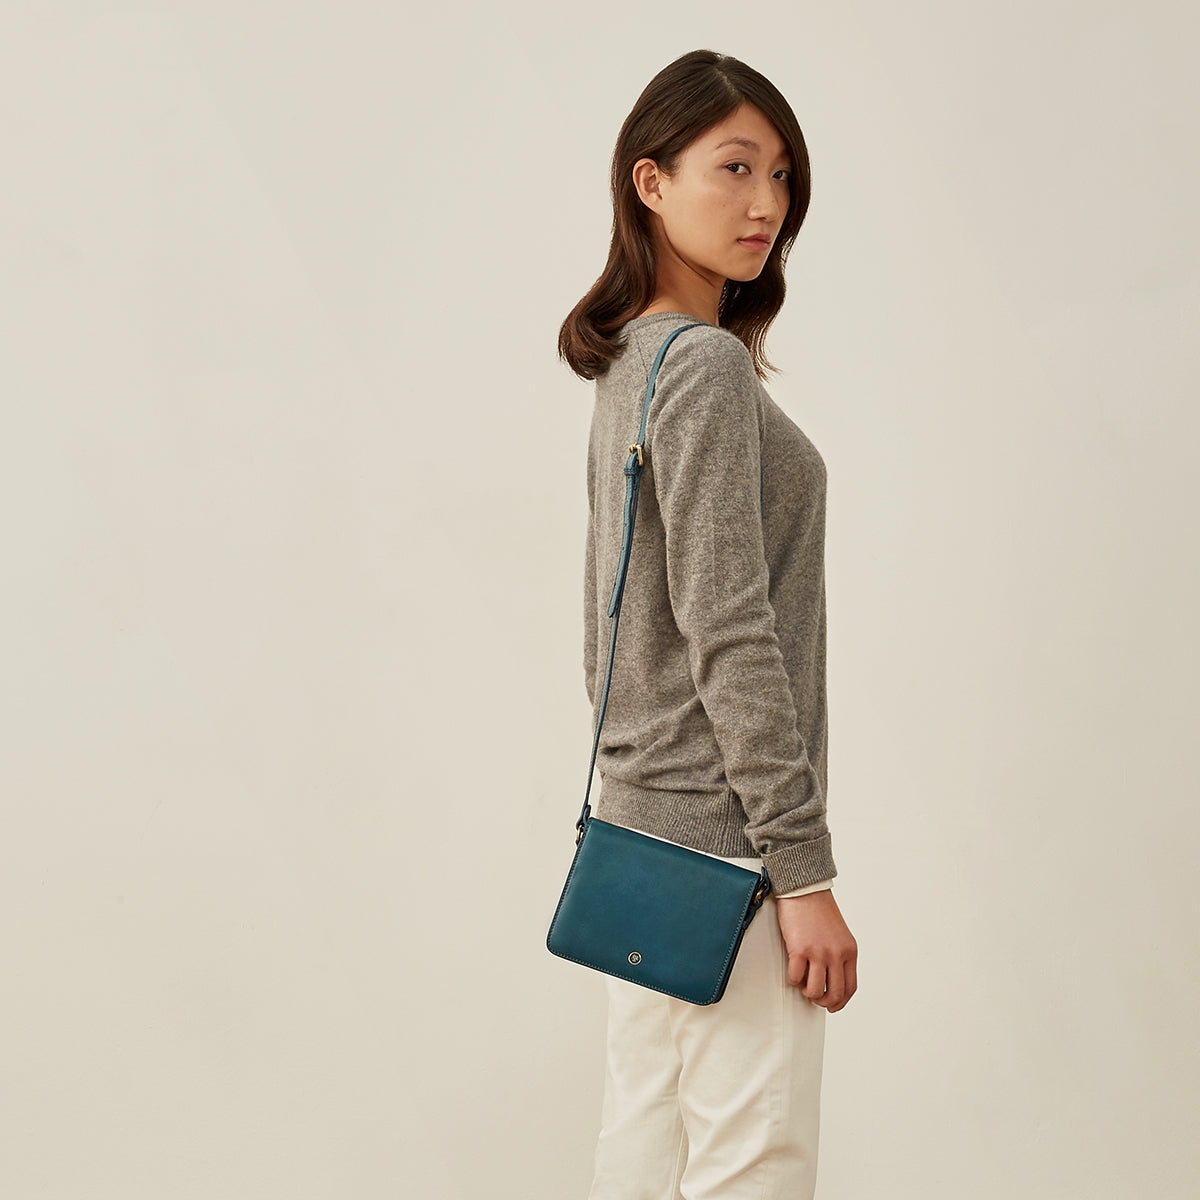 Image 8 of the Lucca' Petrol Leather Cross Body Bag